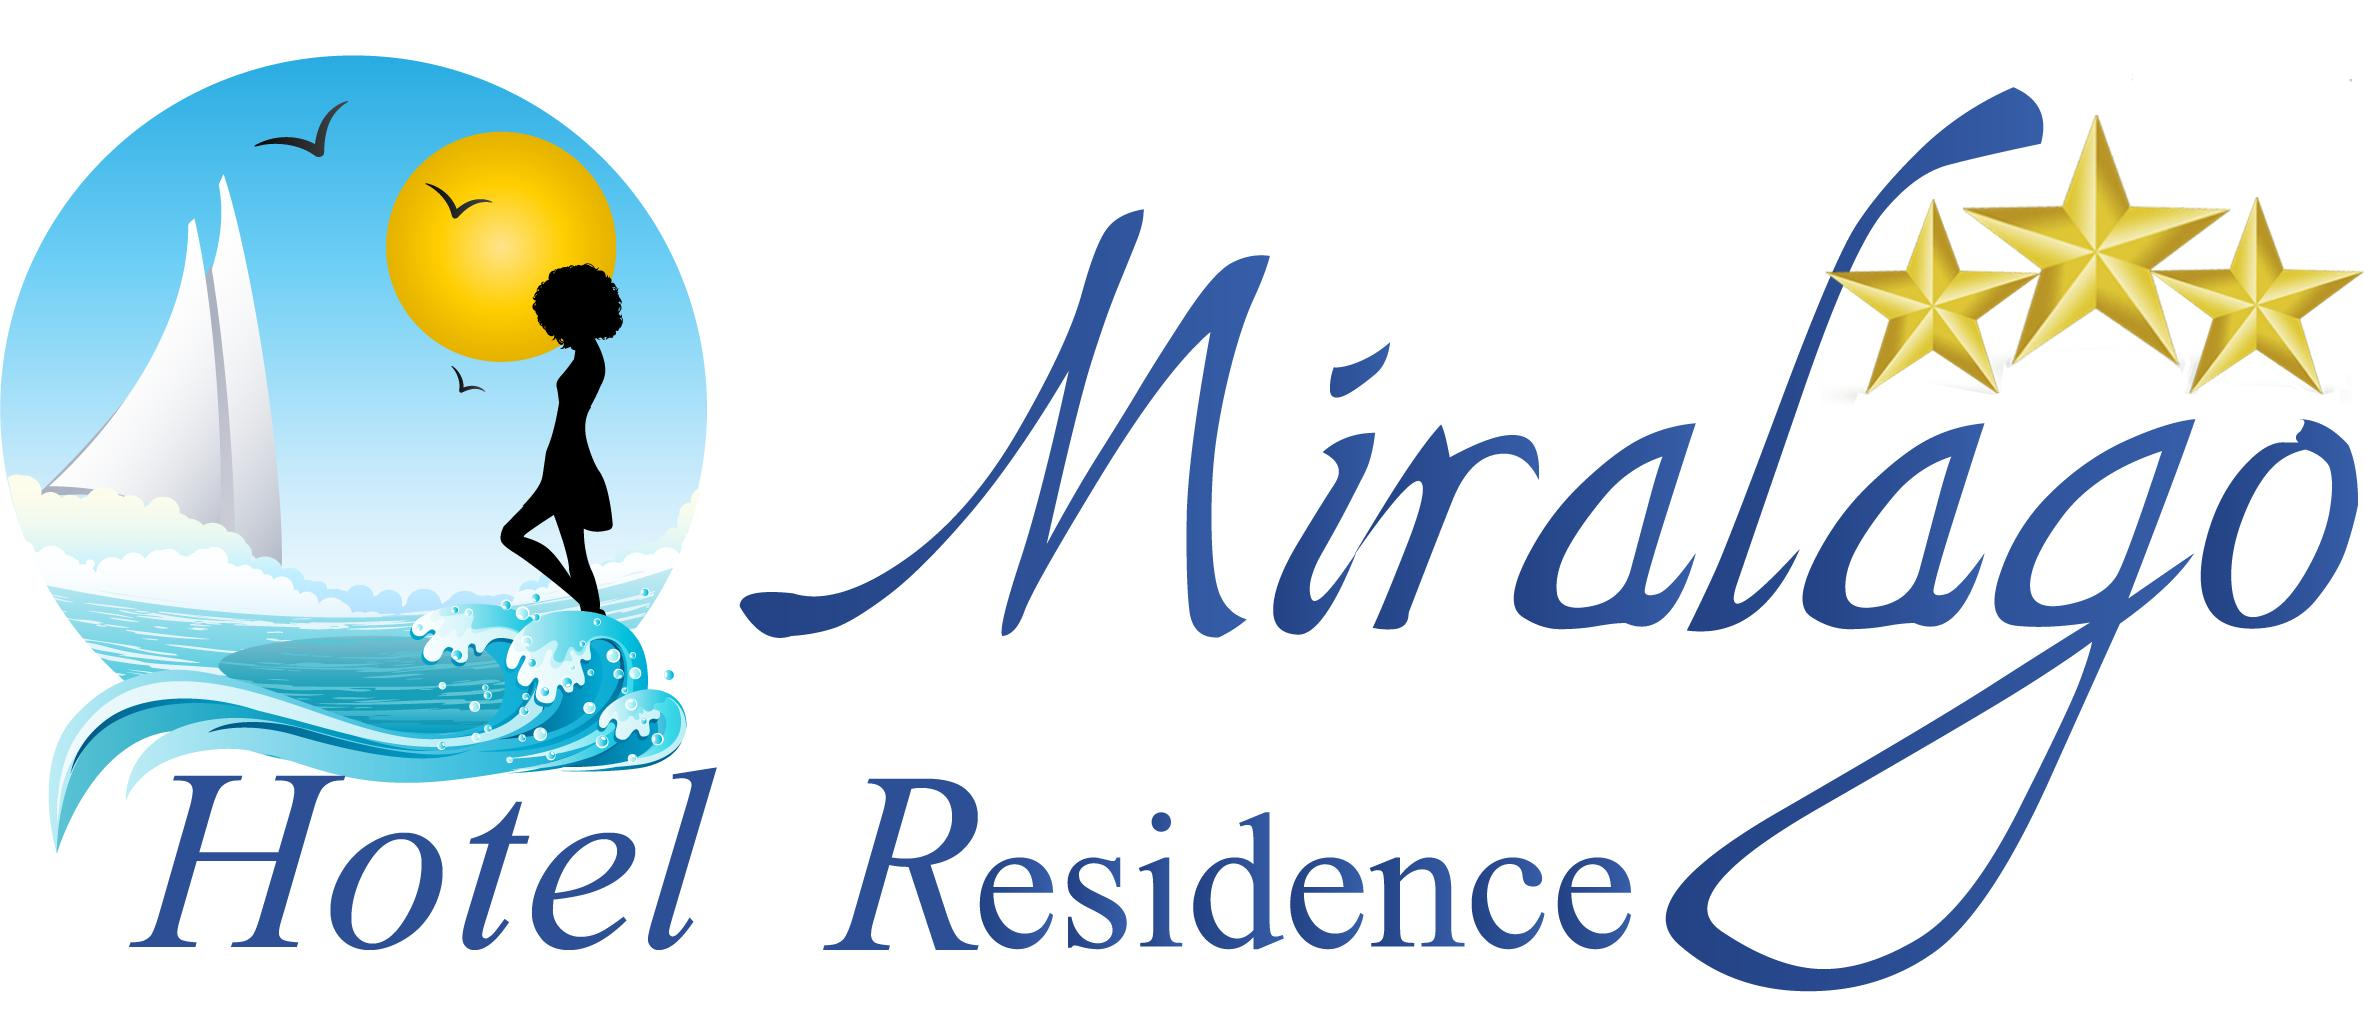 Hotel Residence Miralago rooms and apartments Manerba Garda lake